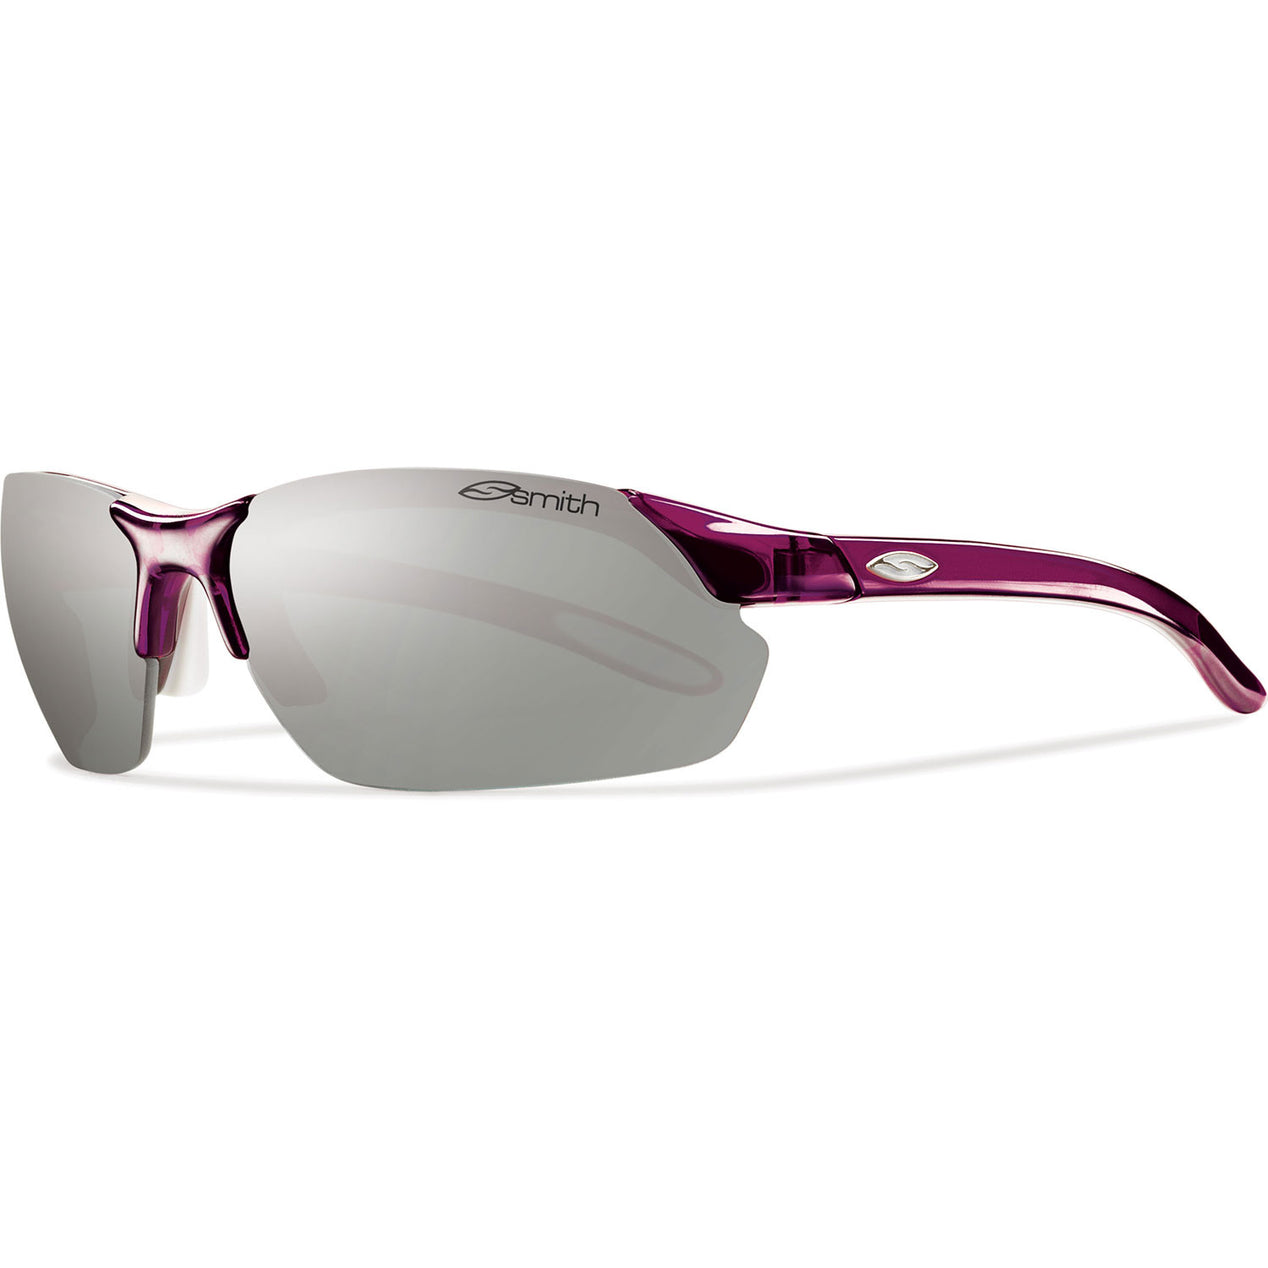 6671b7d19f Smith Optics Parallel Max - Sugar Plum - Carbonic Tlt Platinum Lens ...